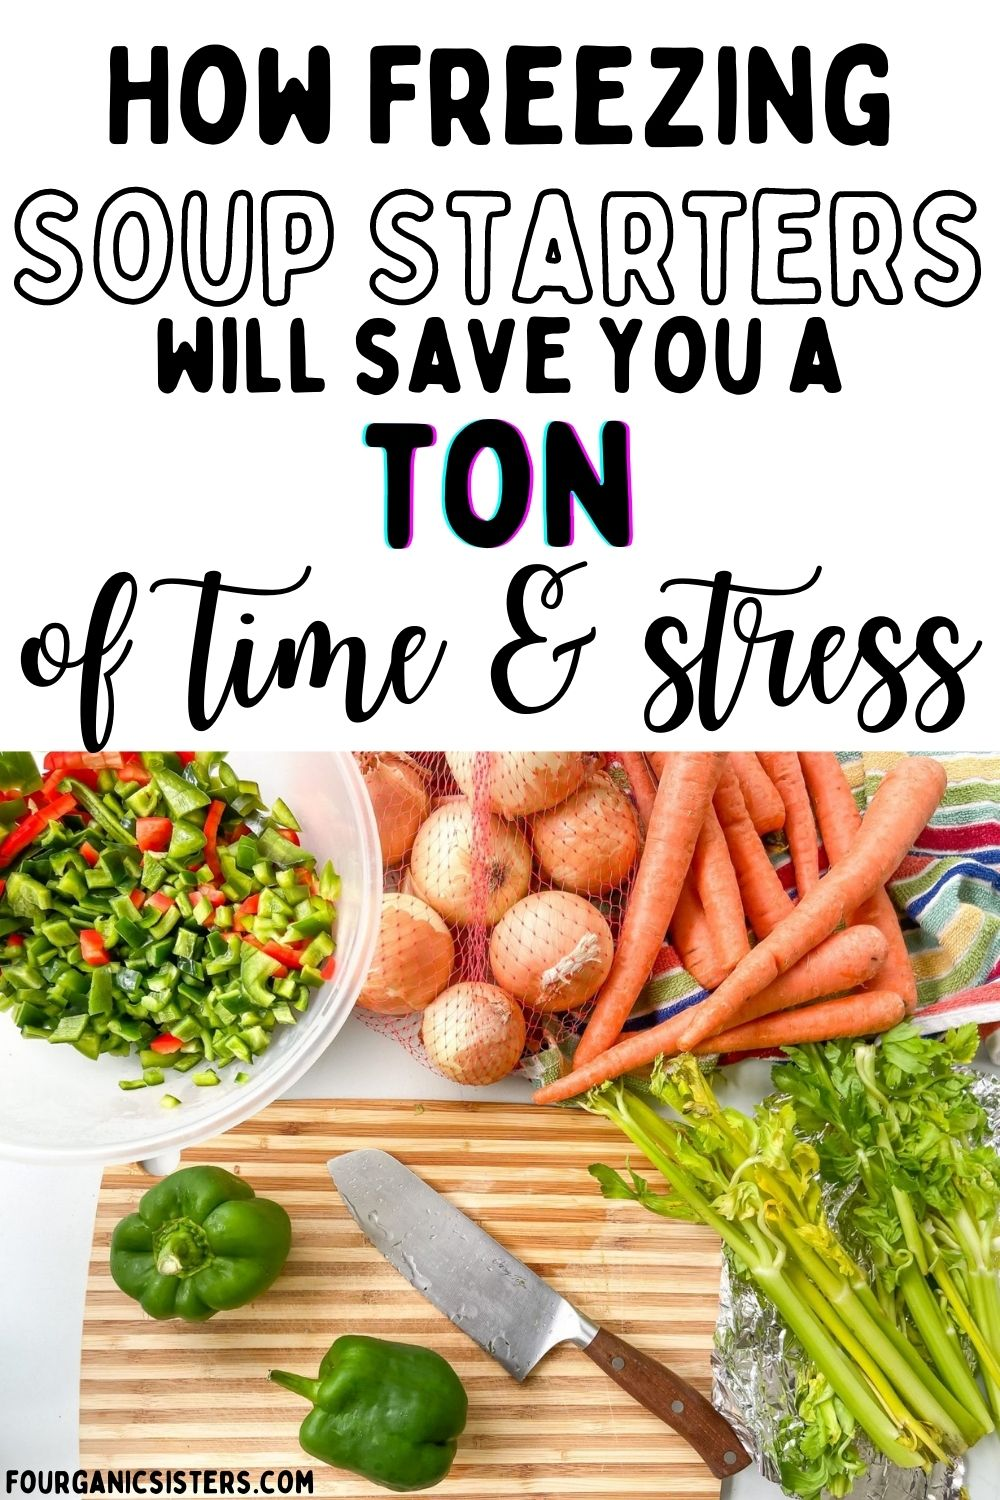 Kitchen Hacks to Save Time | Fourganic Sisters